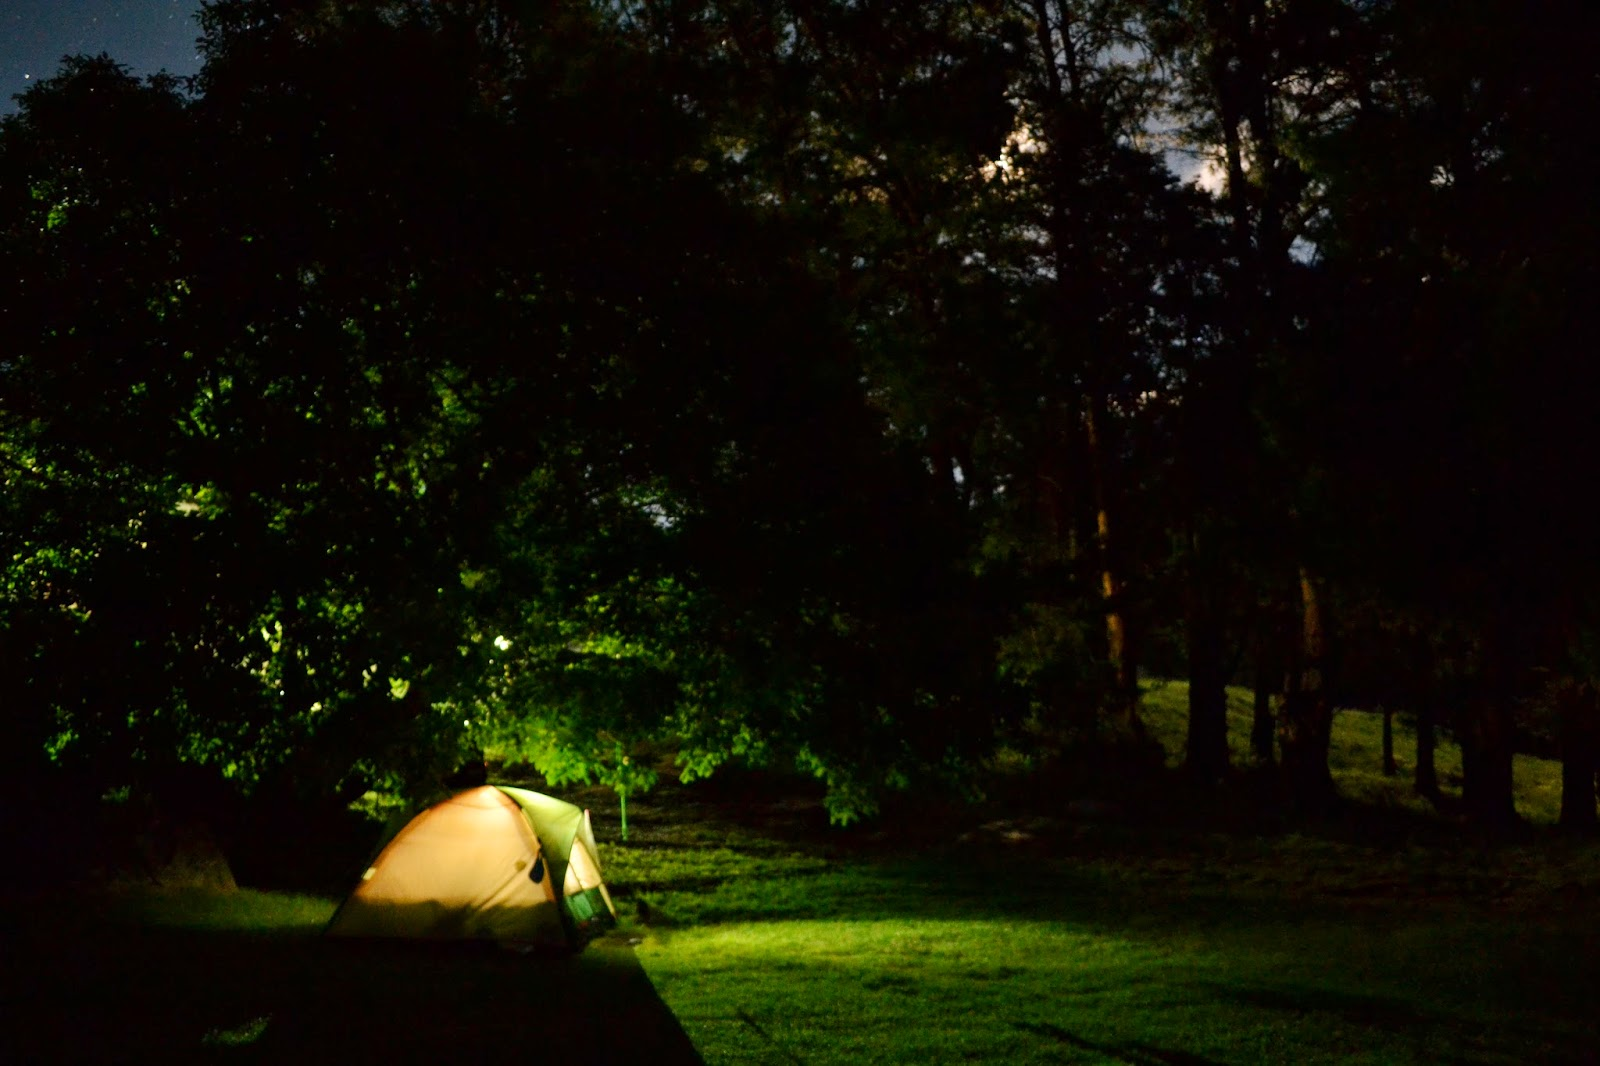 Night time photo of tent and moon behind trees